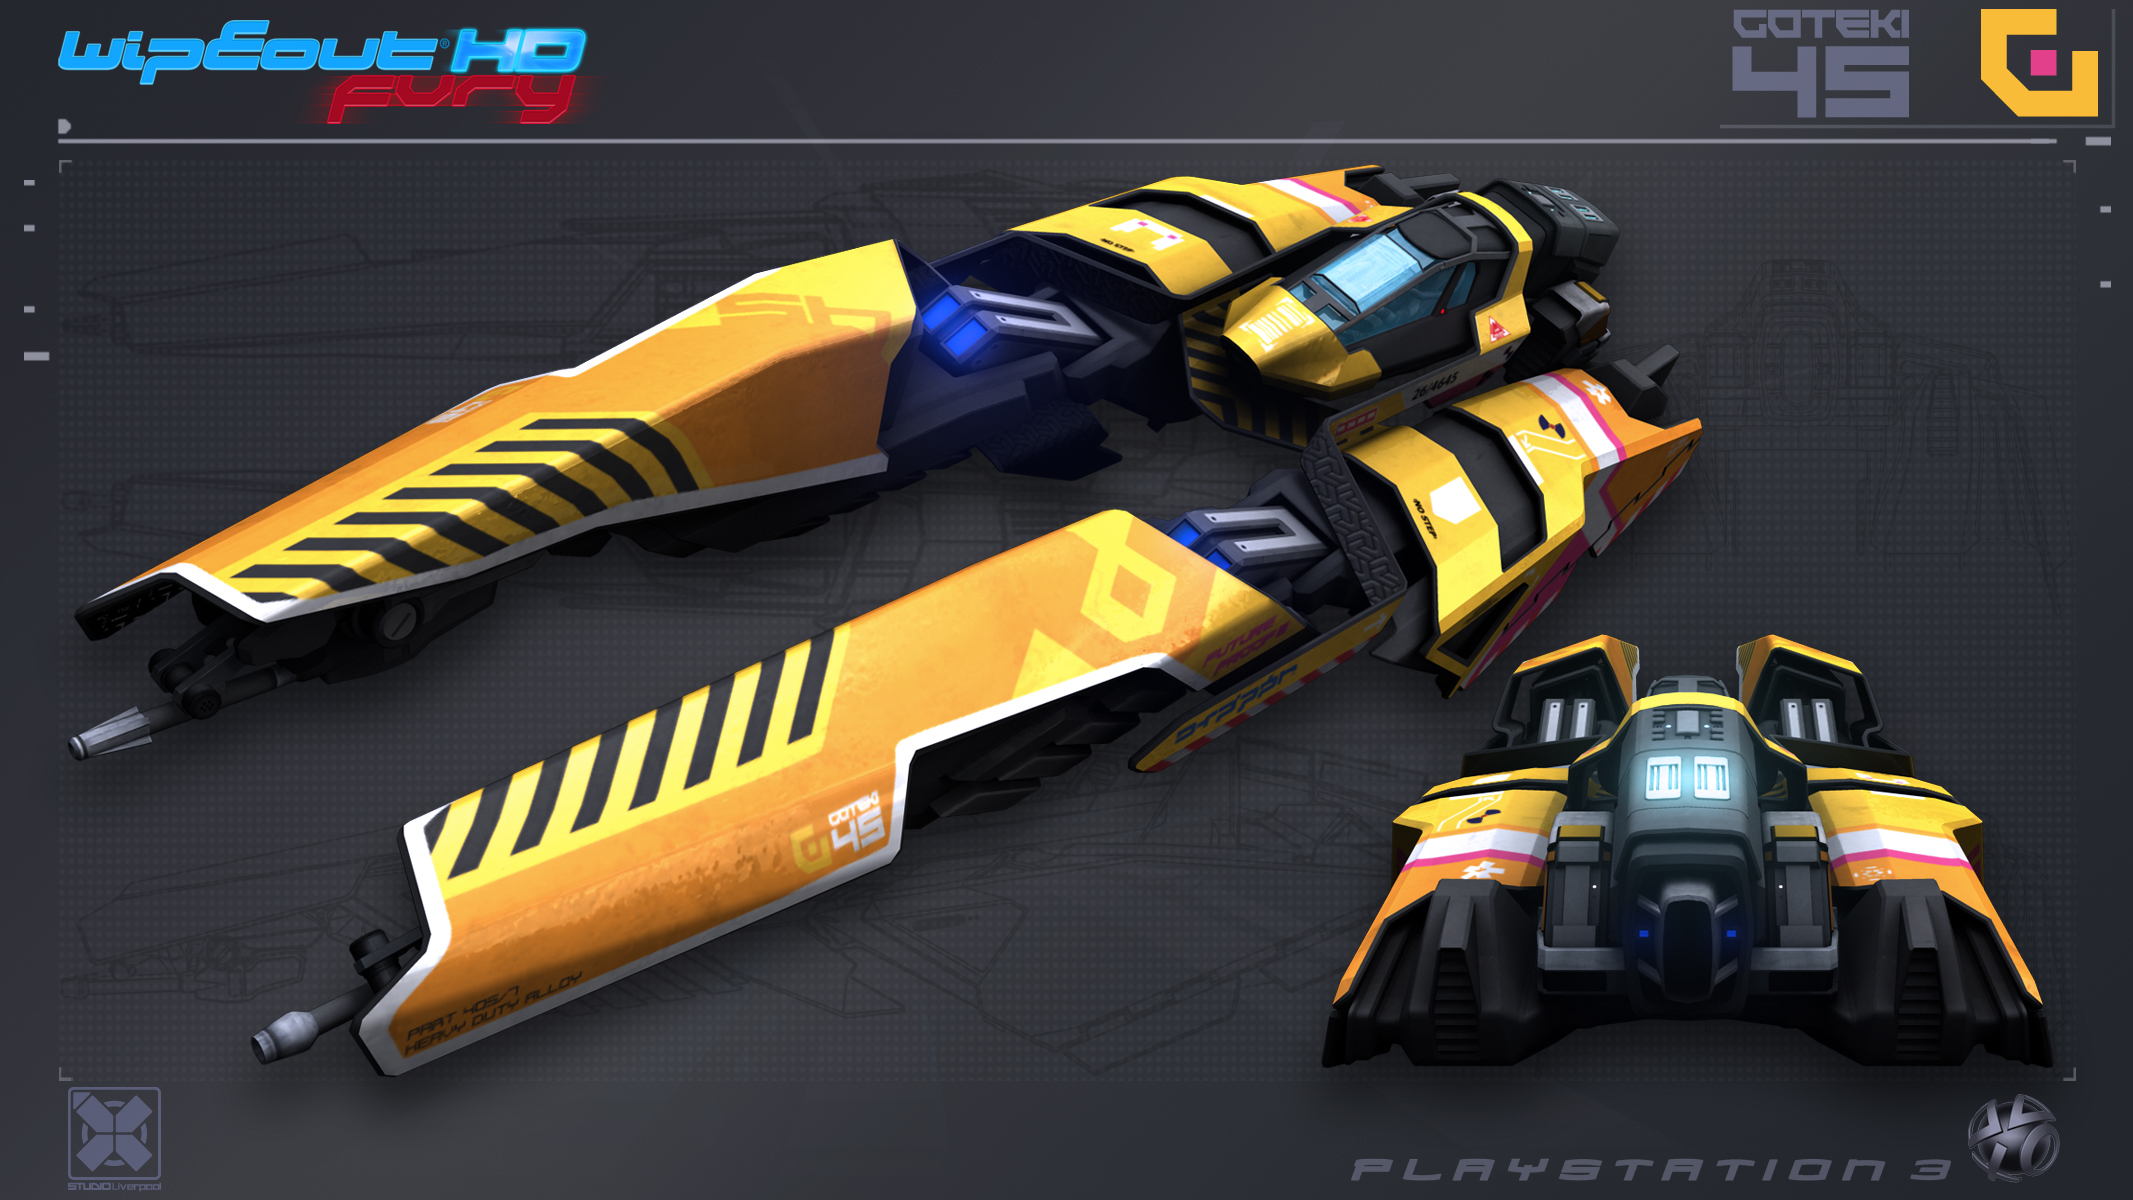 Goteki45 - WipEout FURY - PS3 by nocomplys